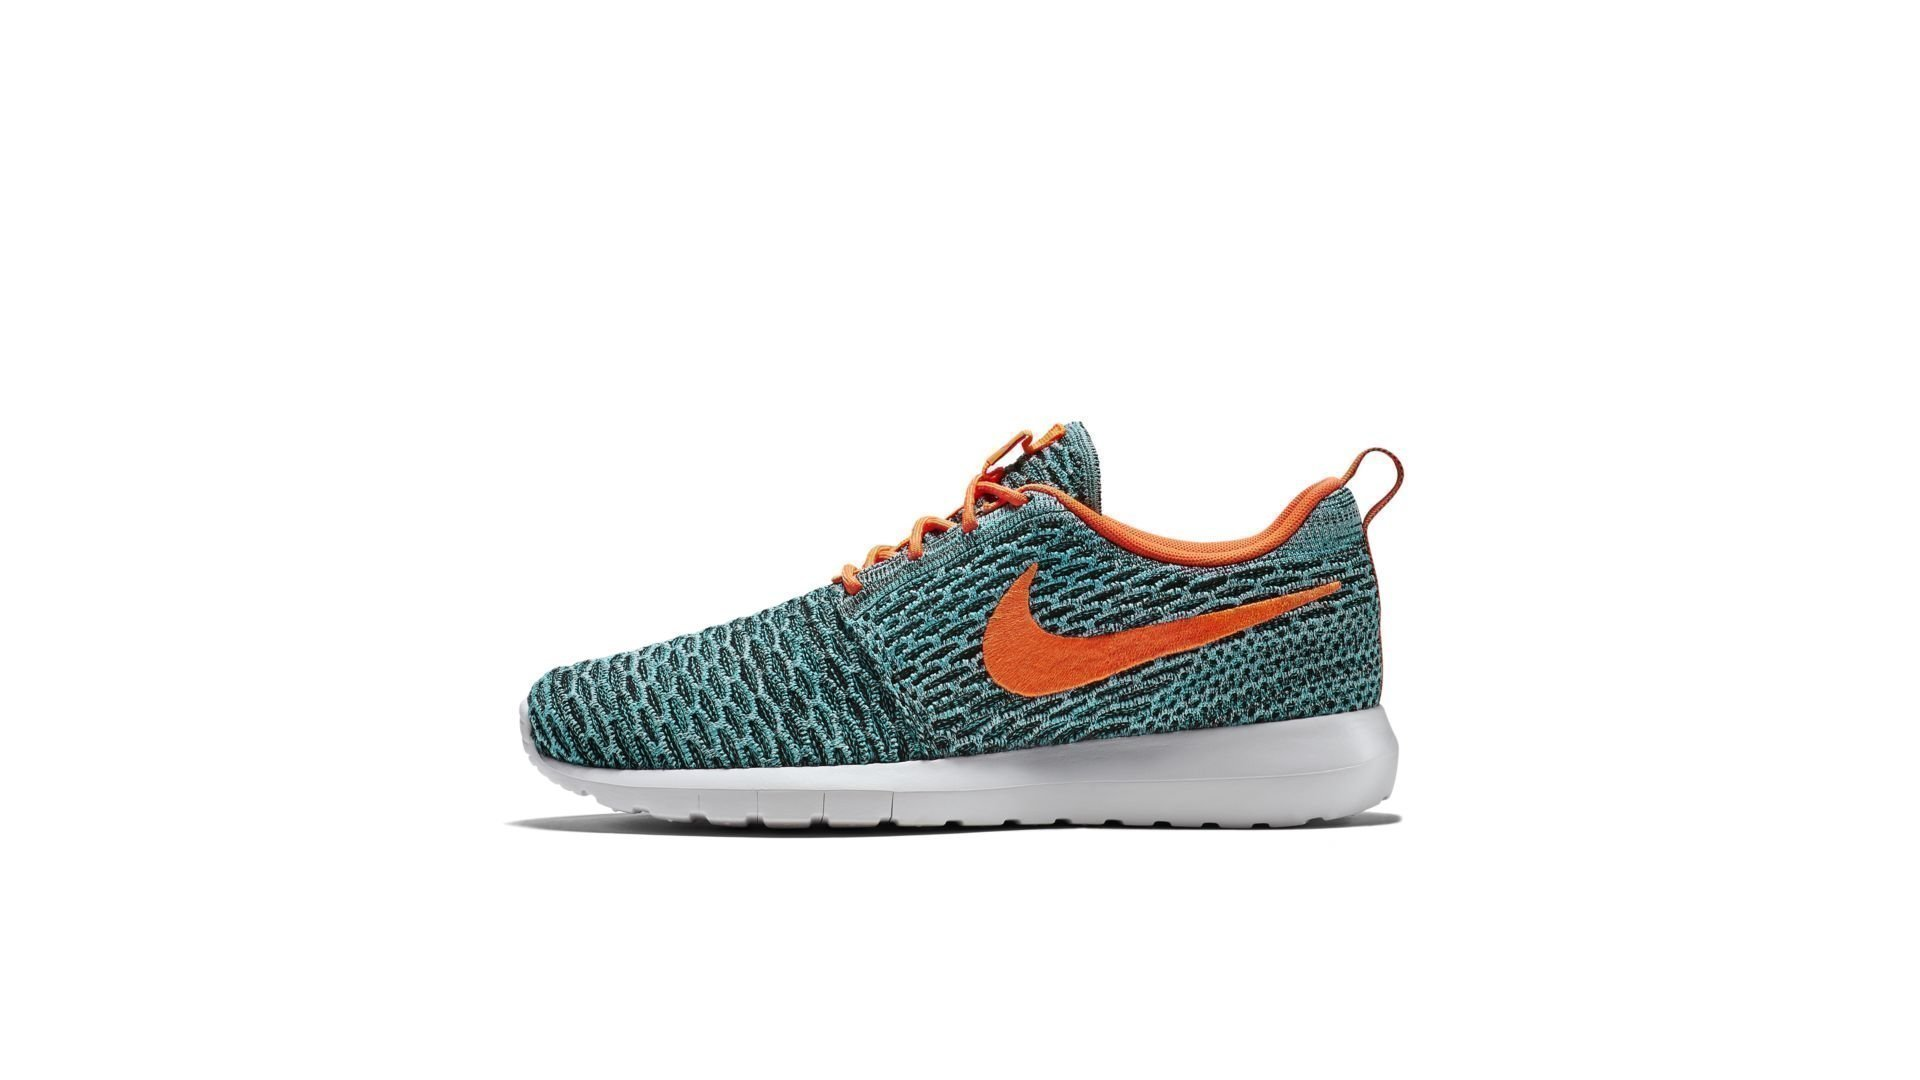 Nike Roshe NM Flyknit Hyper Jade Total Orange (W) (677243-009)